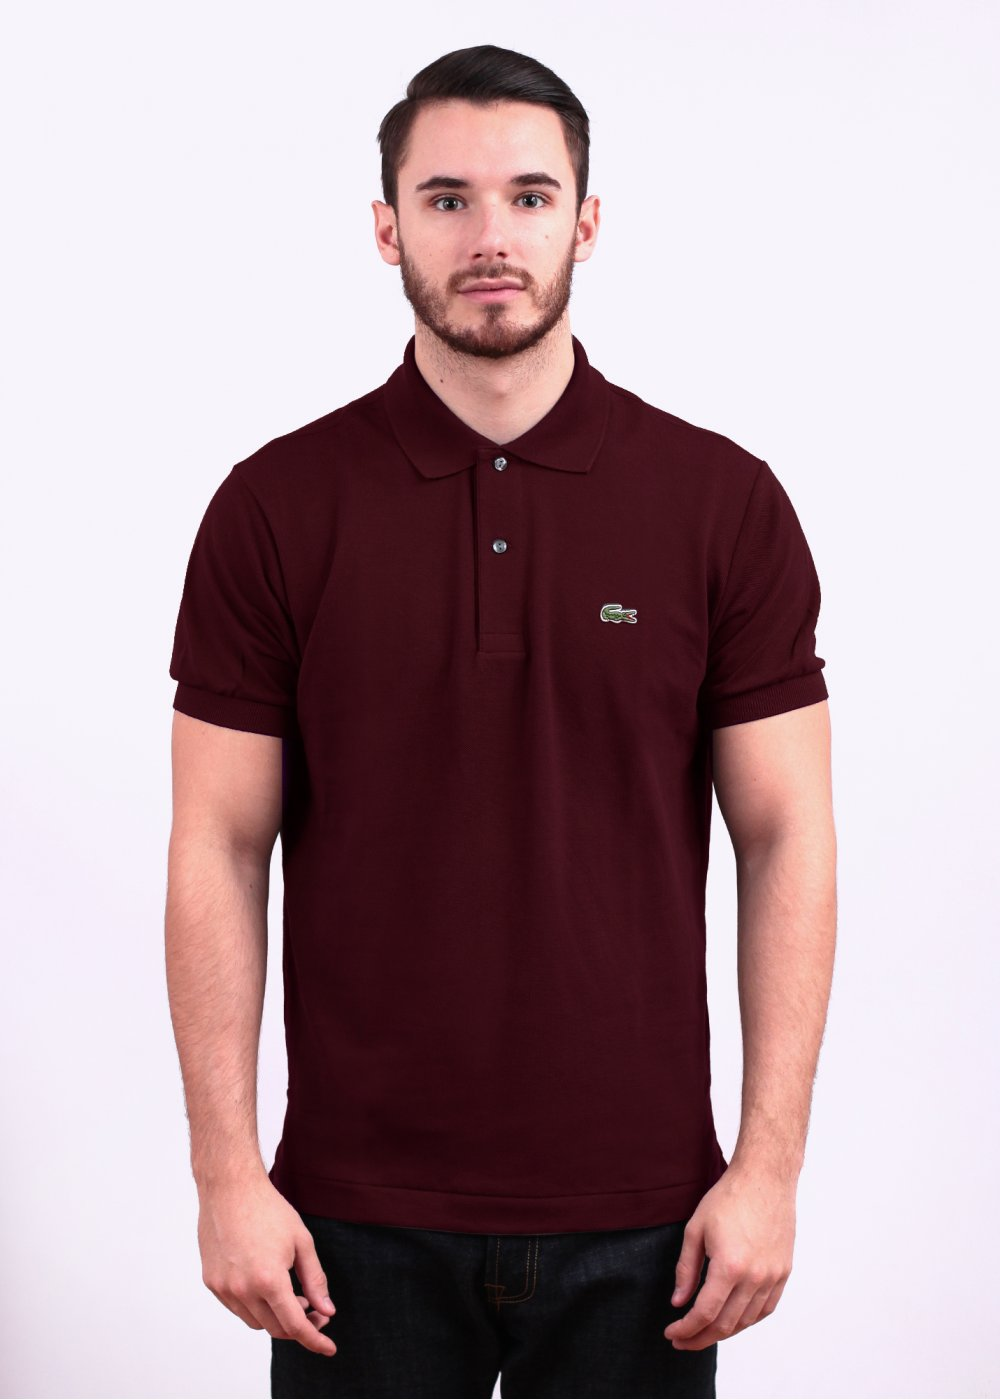 7804db9bd766e Lacoste Short Sleeve Logo Polo Shirt - Maroon